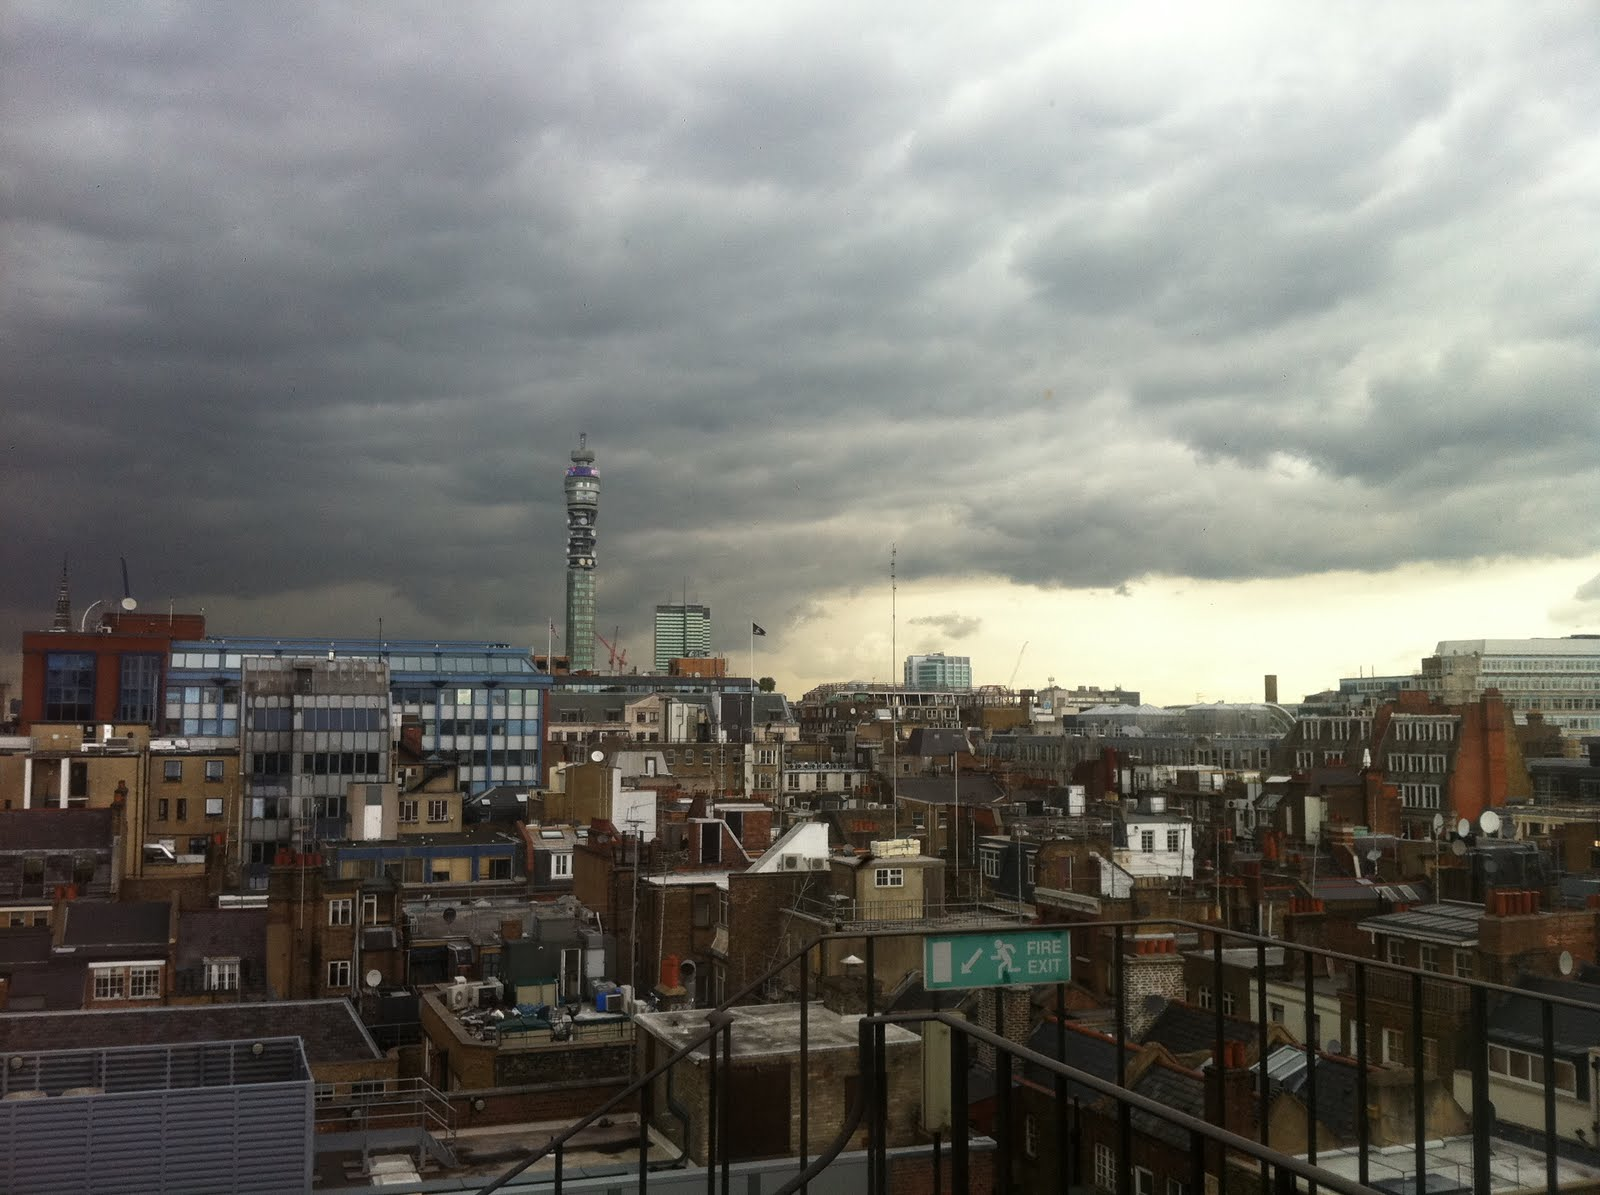 london weather - photo #8